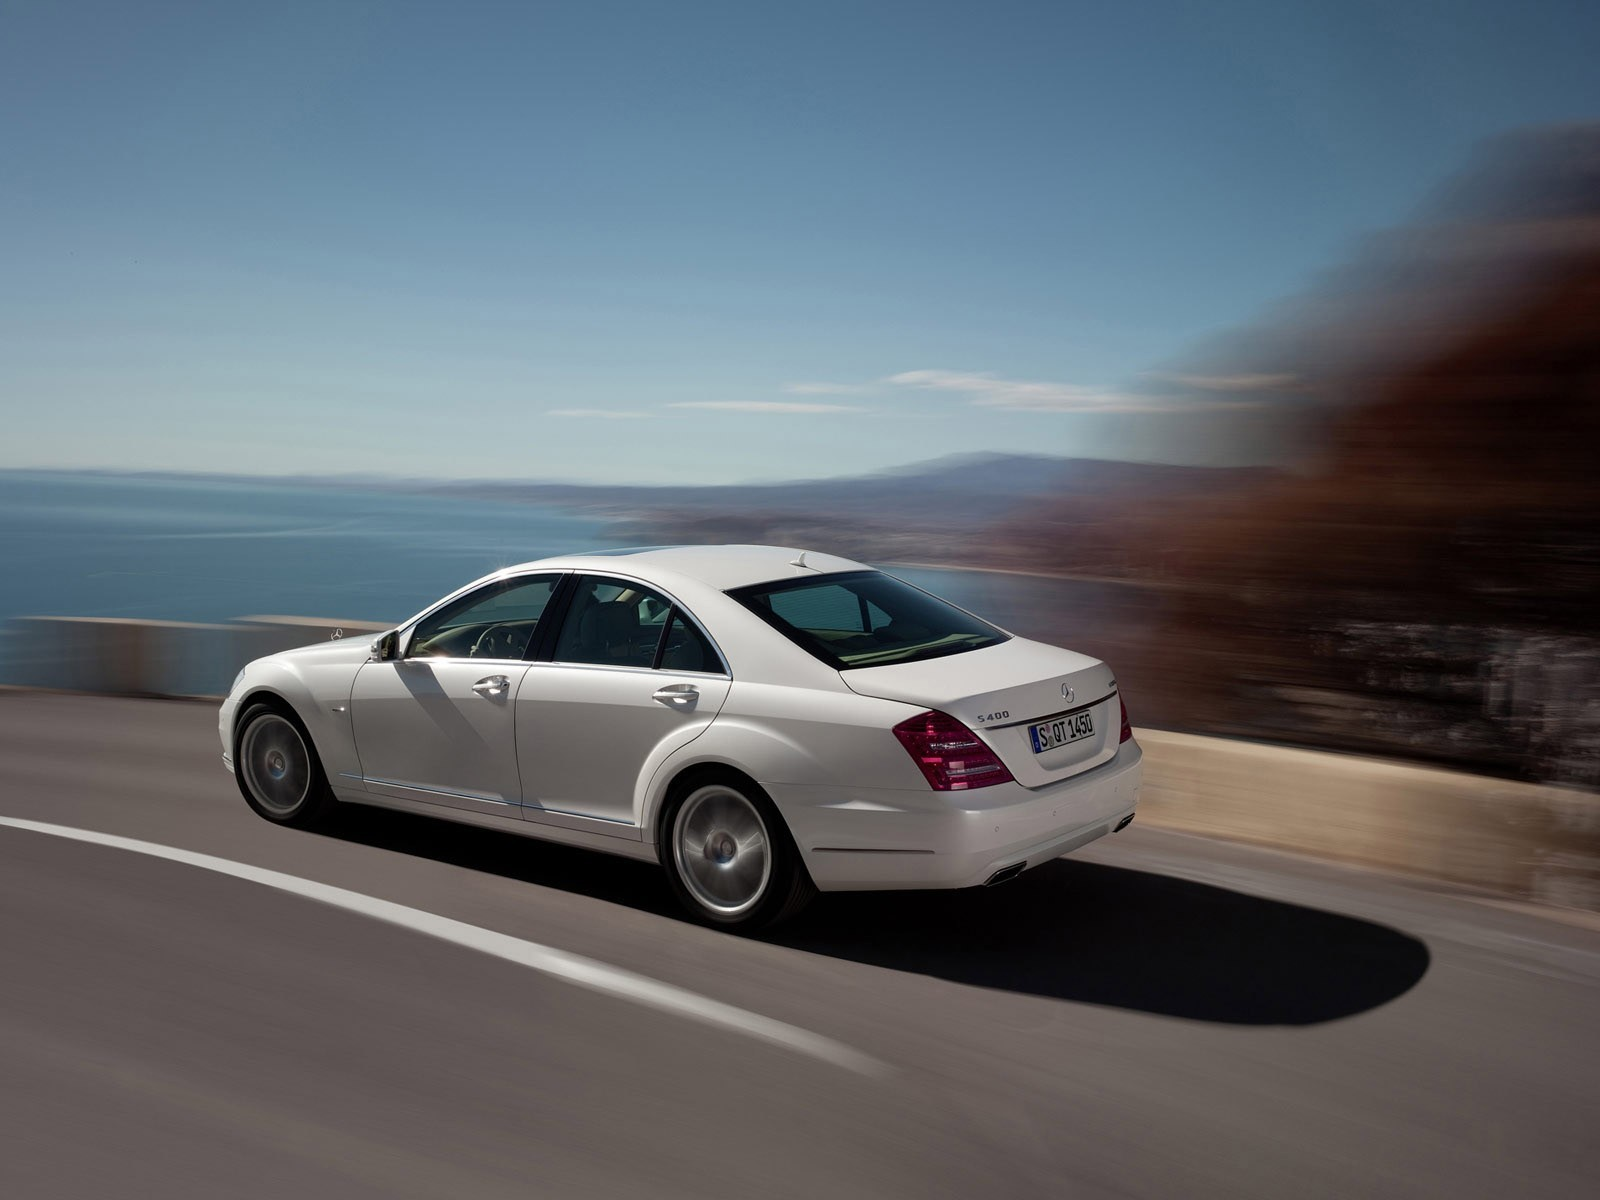 cars motion blur Mercedes-Benz HD Wallpaper